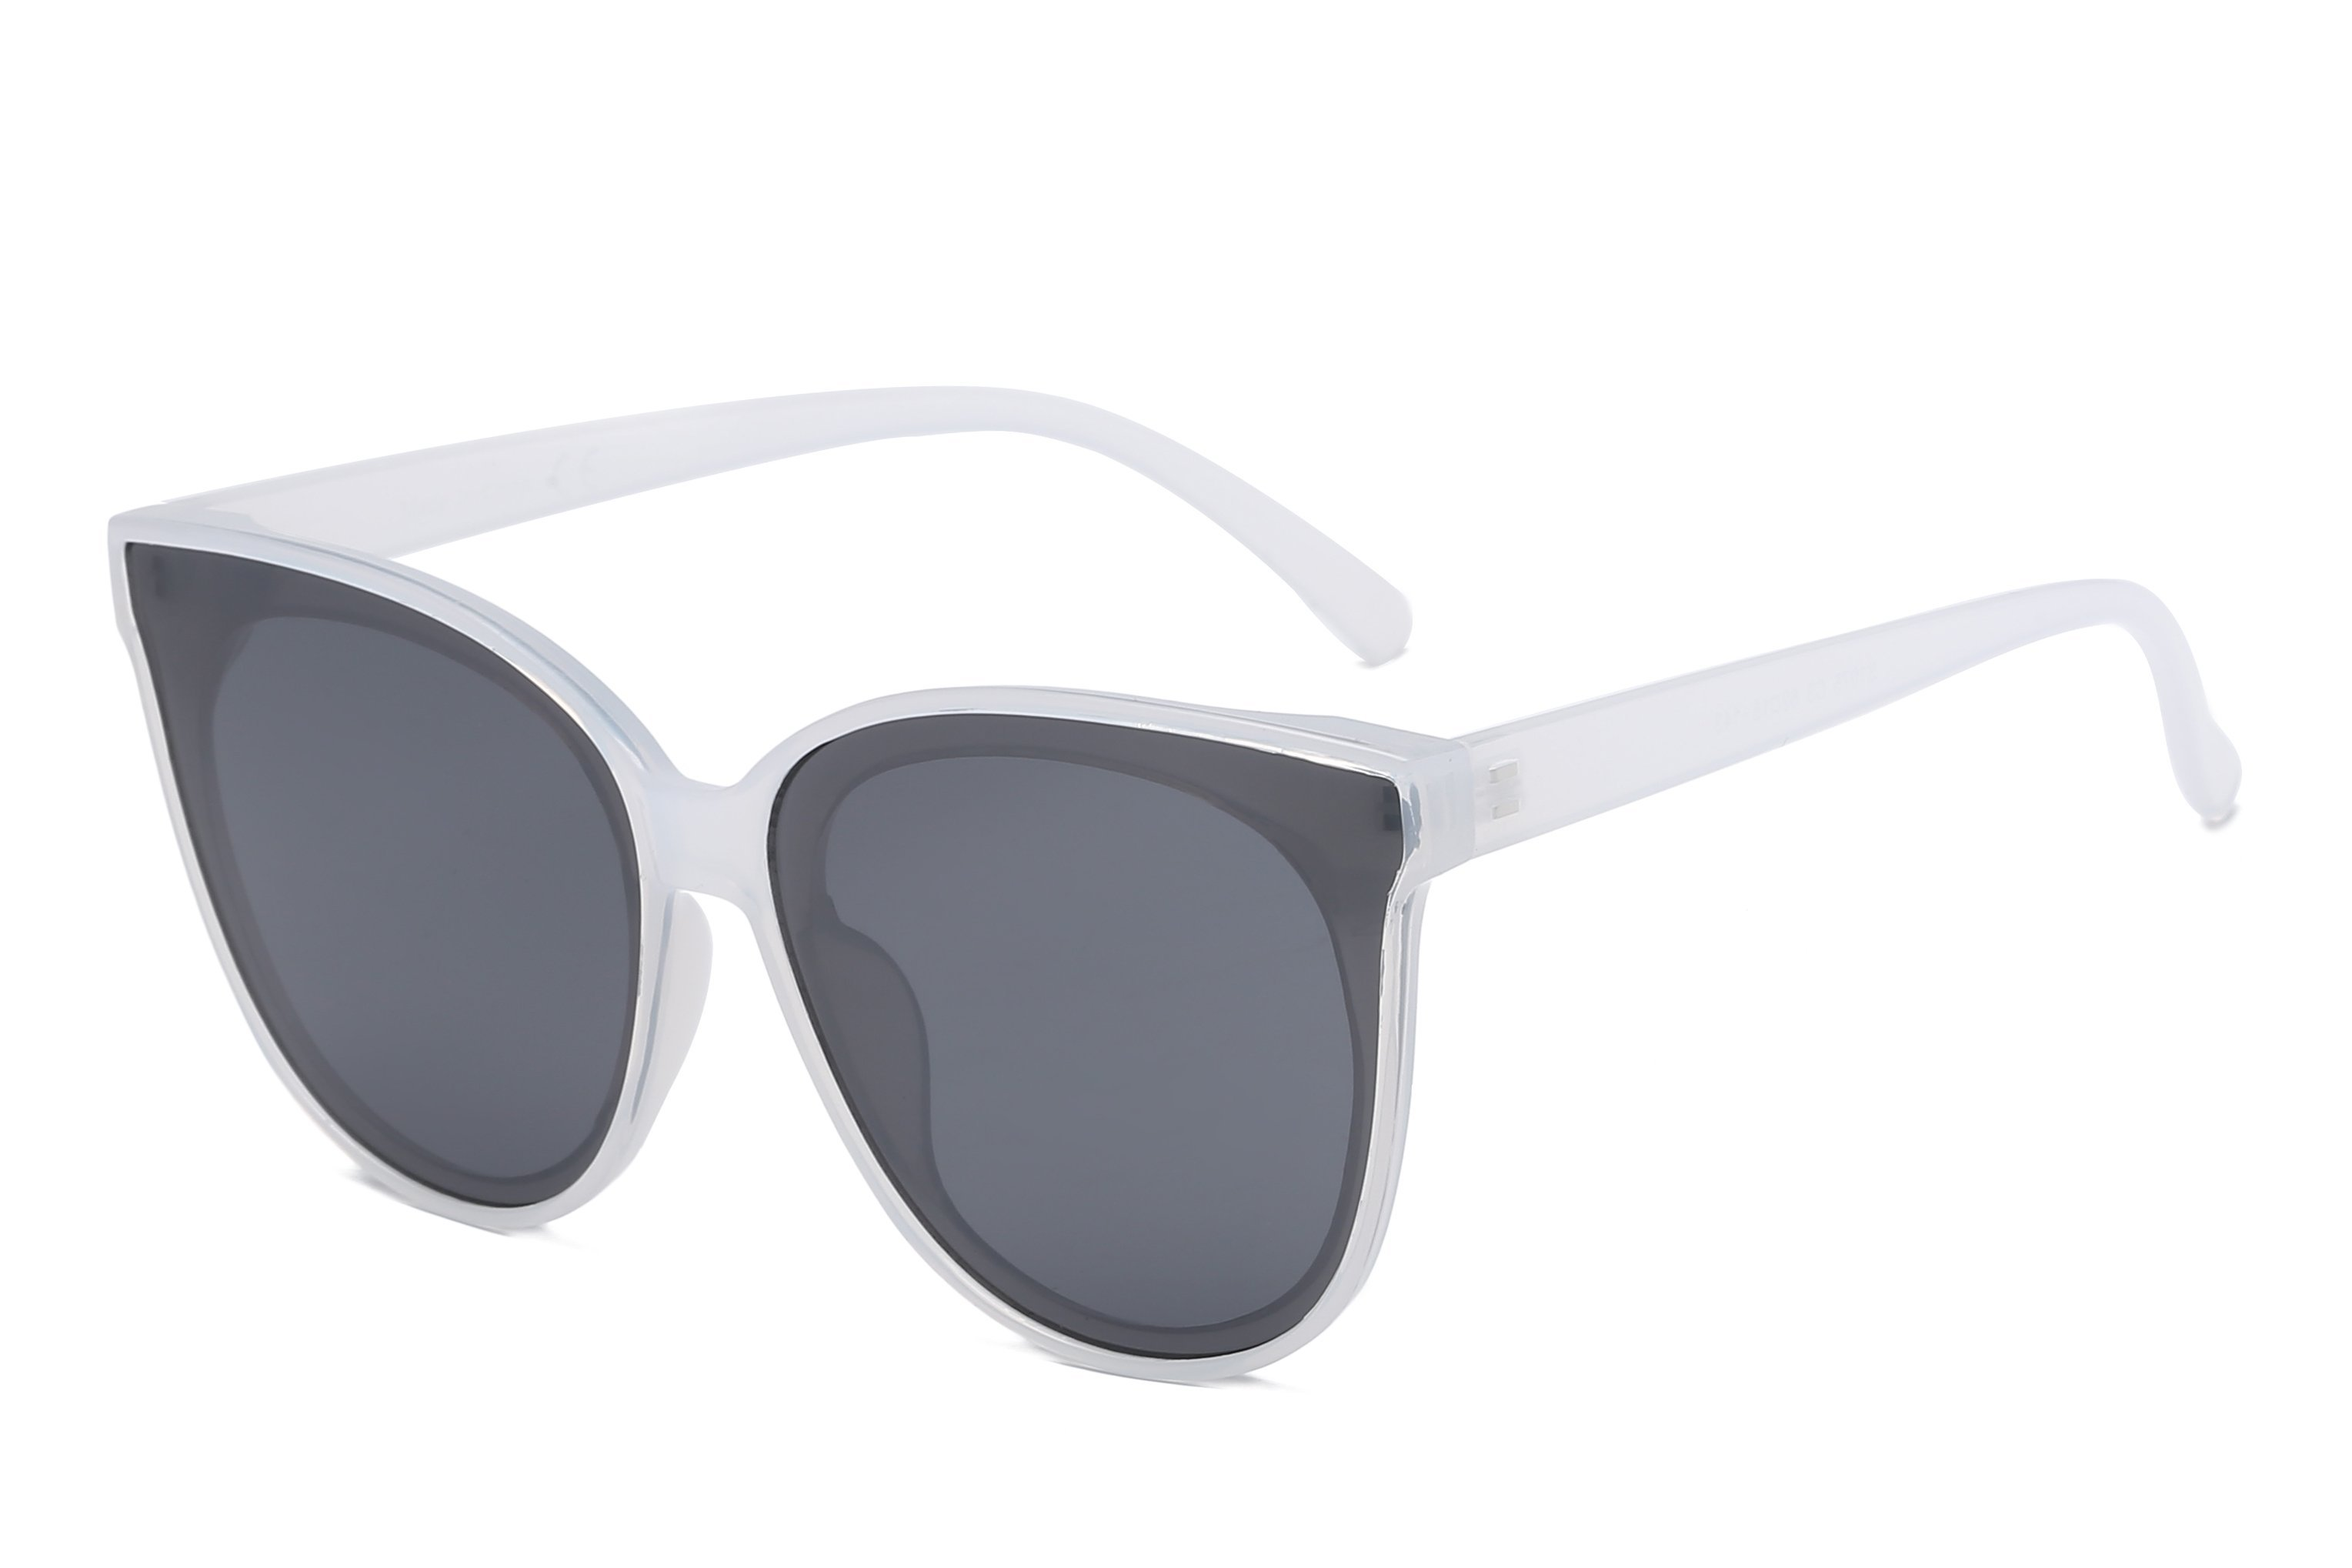 Round Cat-Eye Sunglasses -White - Front